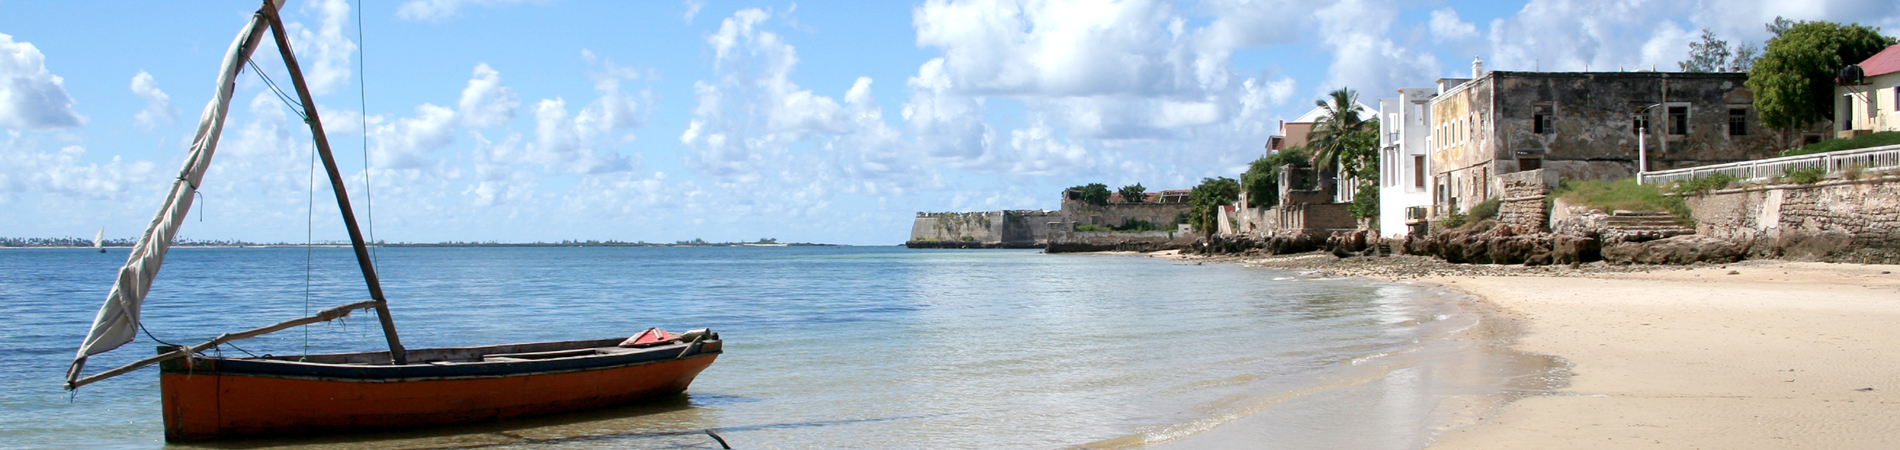 shutterstock_moz ilha do mozambique